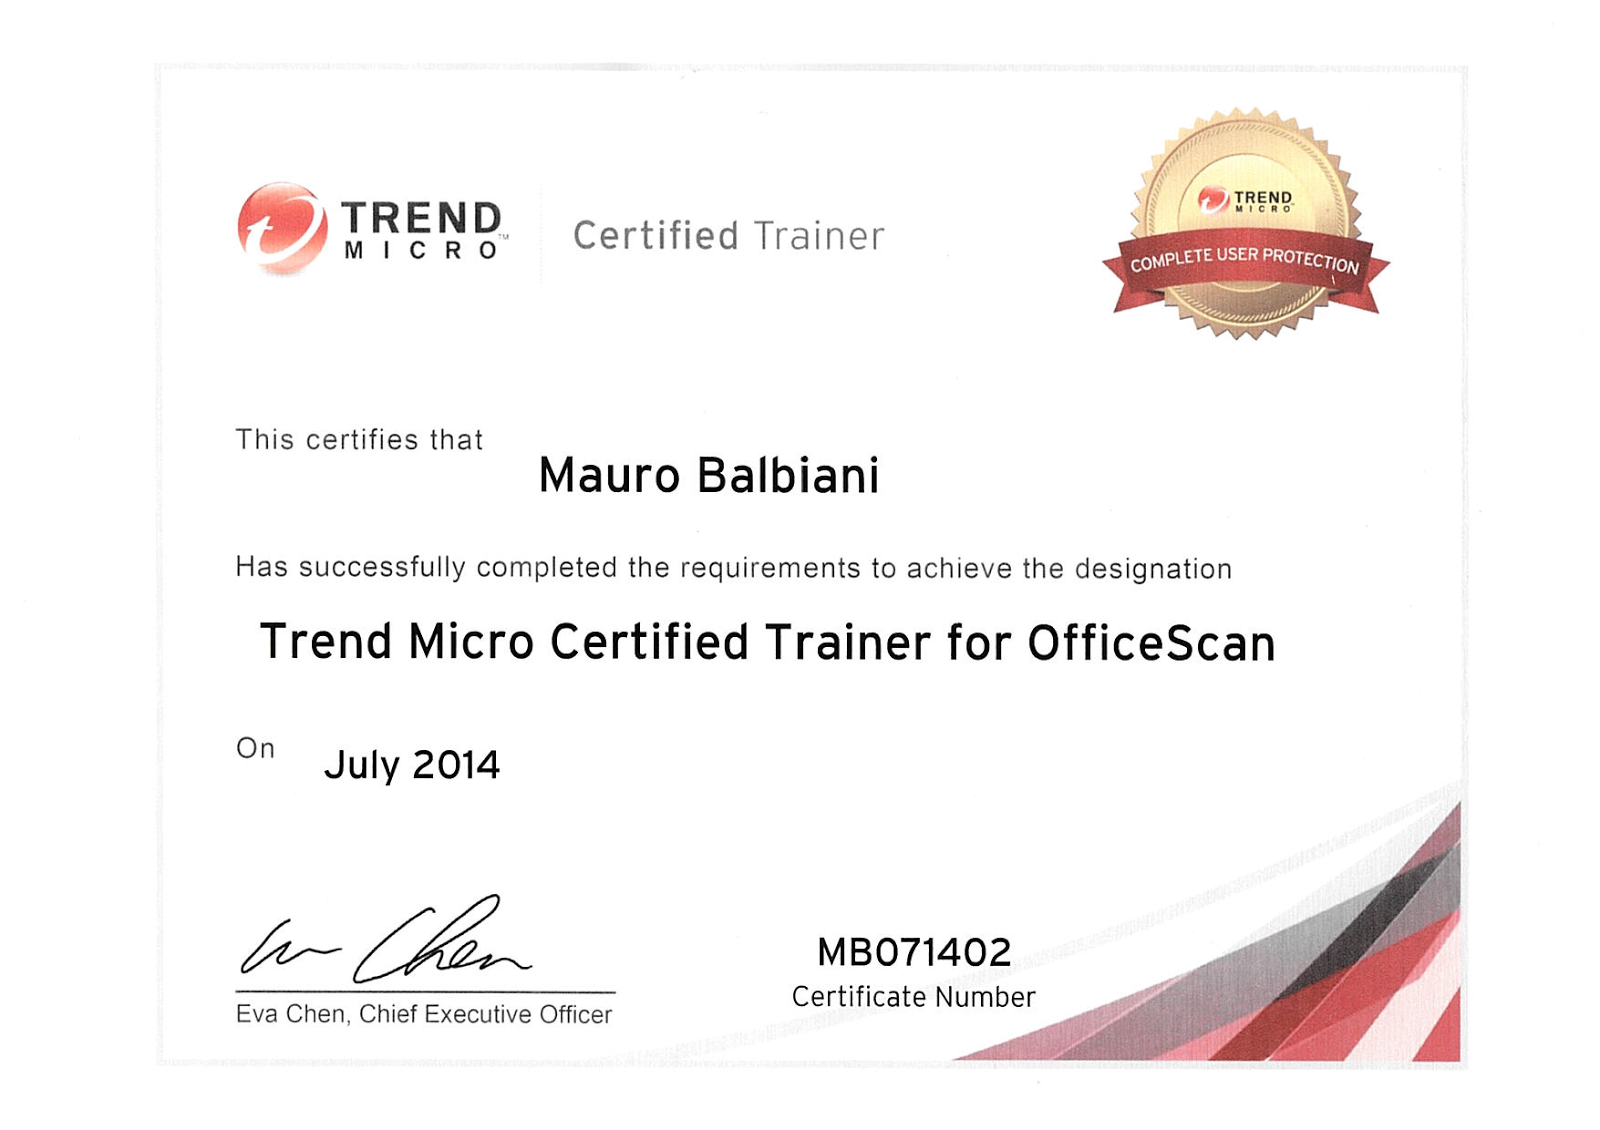 Trend Micro Officescan Trainer